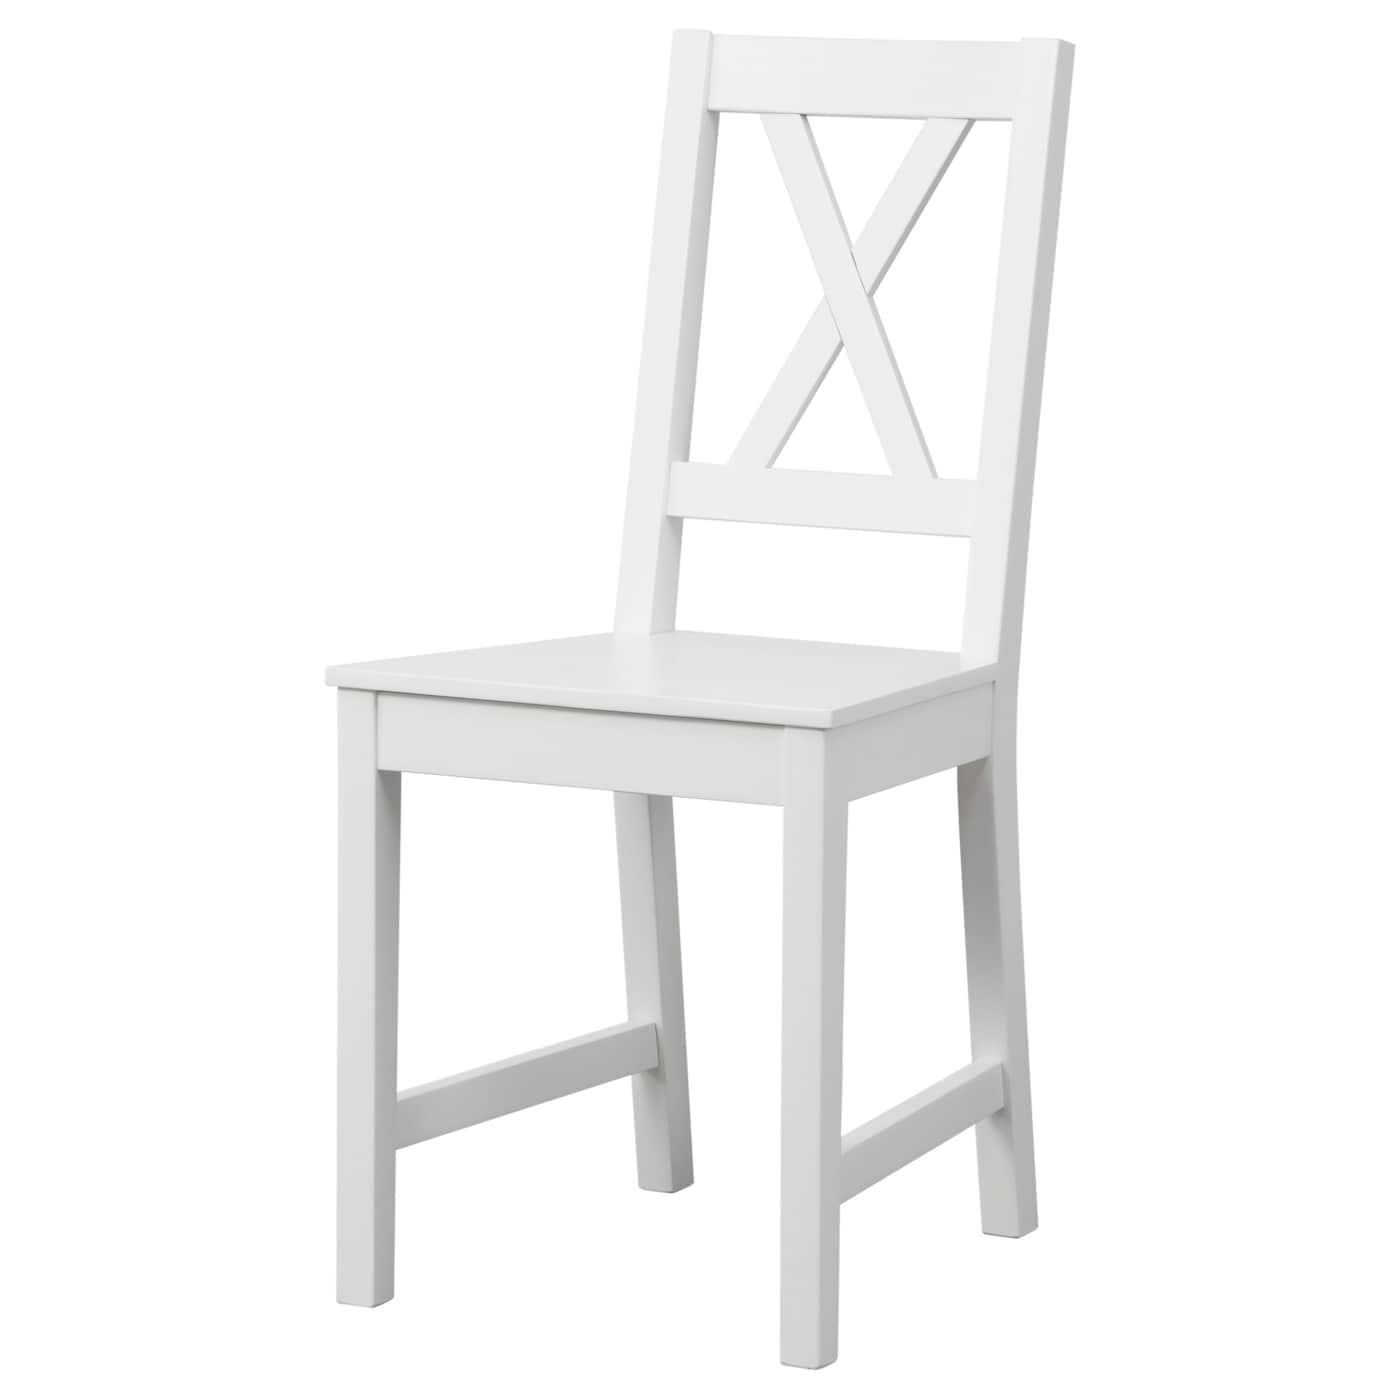 bassalt chair white ikea. Black Bedroom Furniture Sets. Home Design Ideas